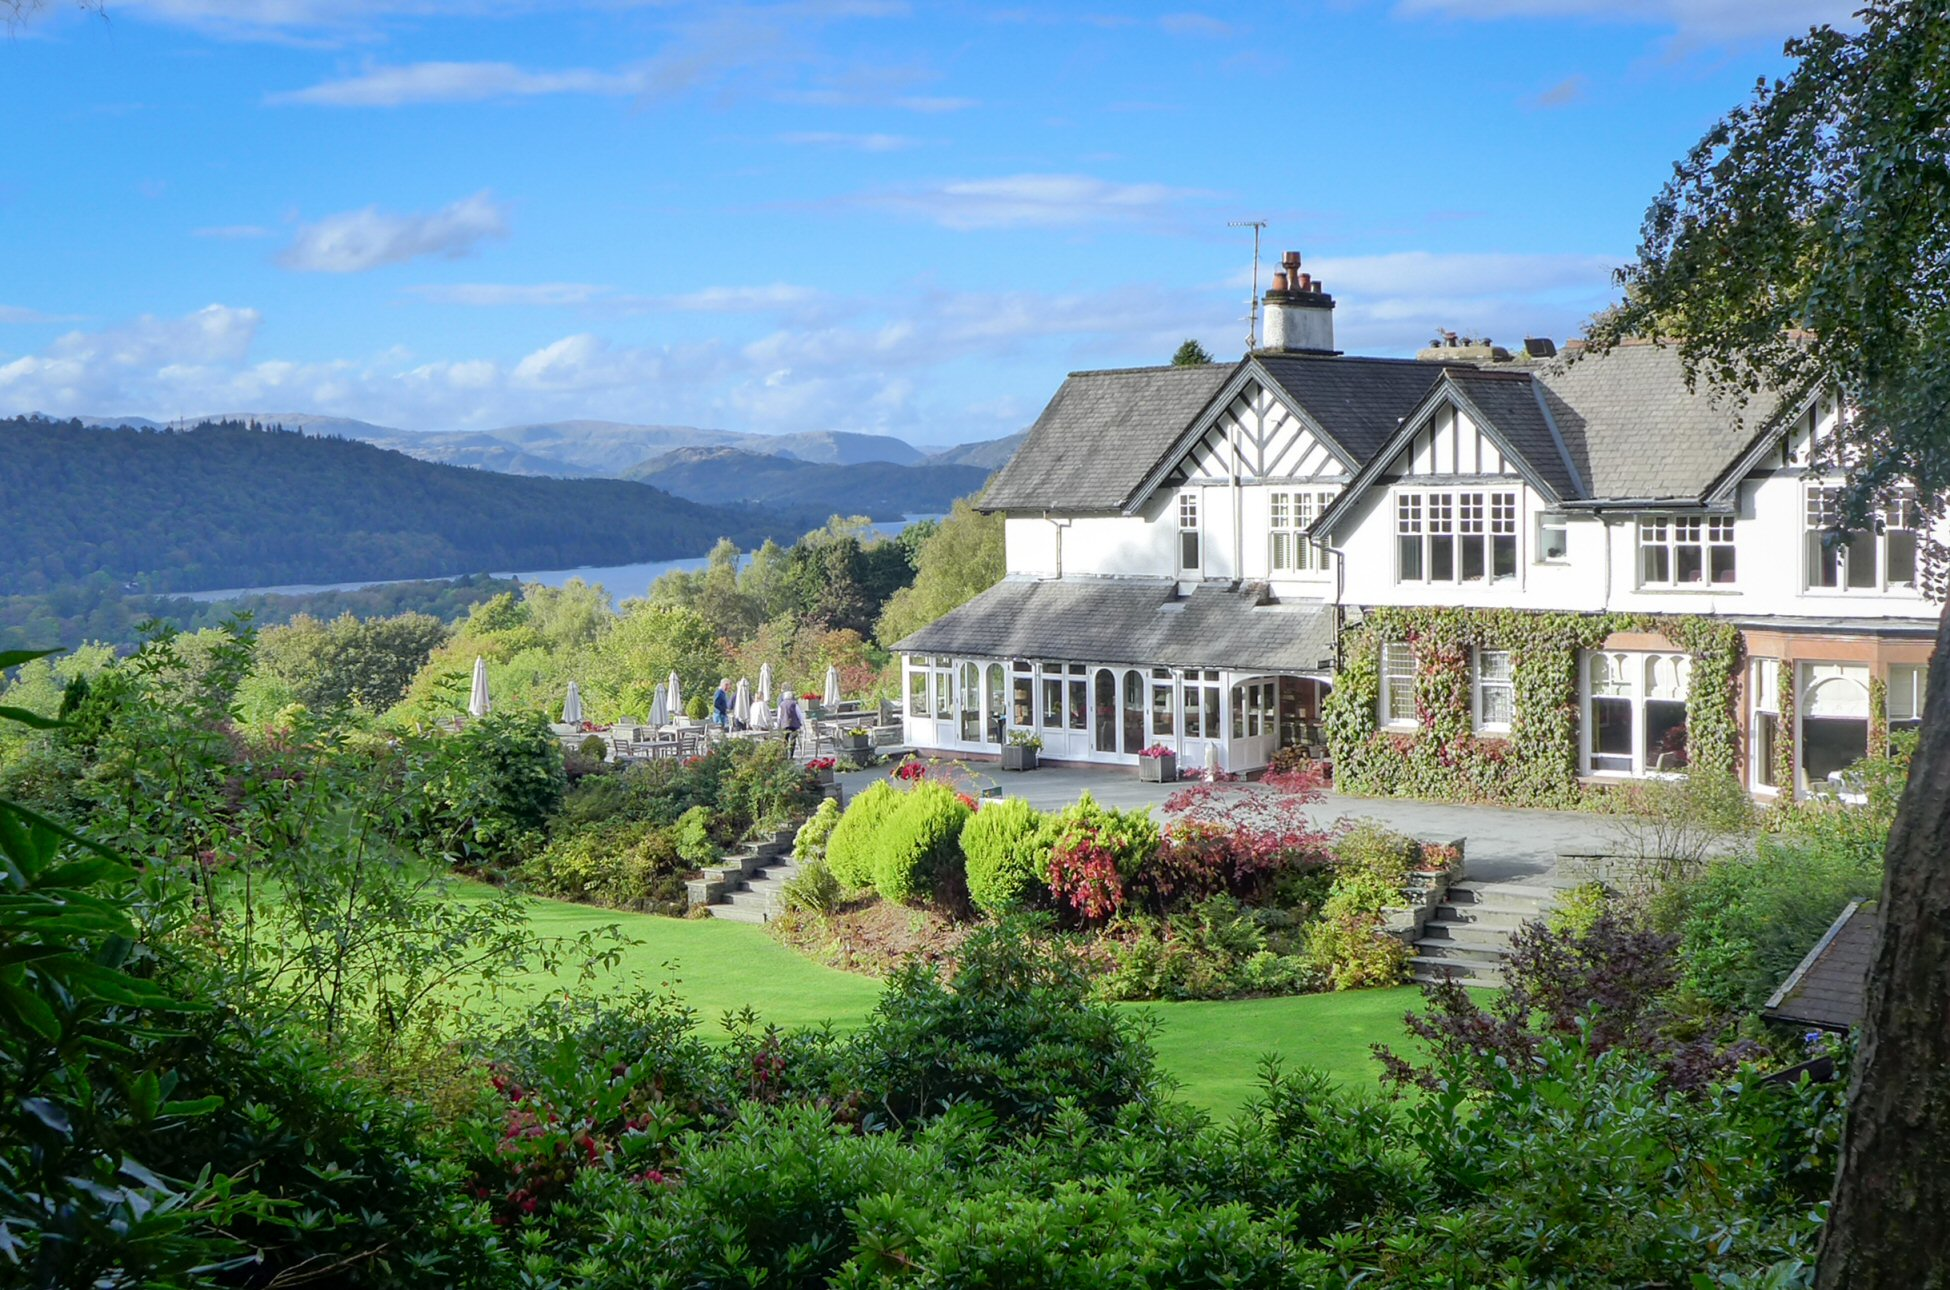 Find inspiration from Potter and Wordsworth on a Lake District writing break